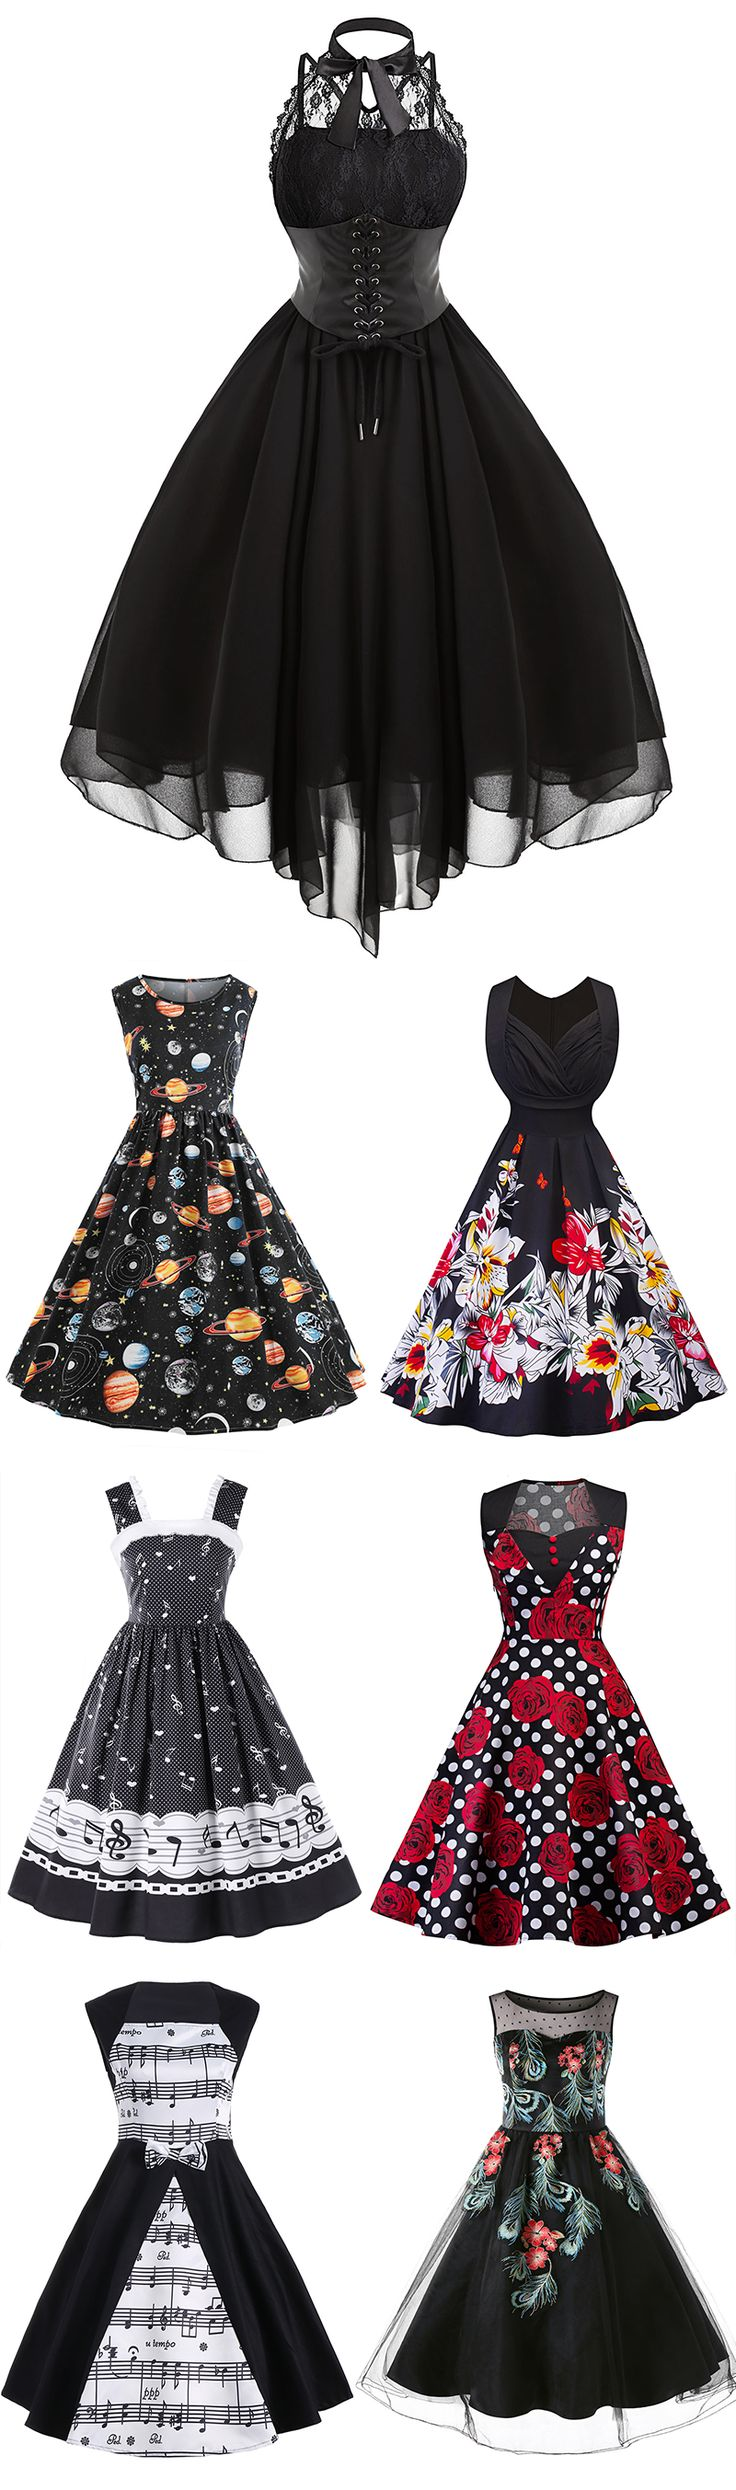 100+ New Arrived Vintage Dresses | Starting from $13| Sammydress.com | #vintage #dress #womenfashion